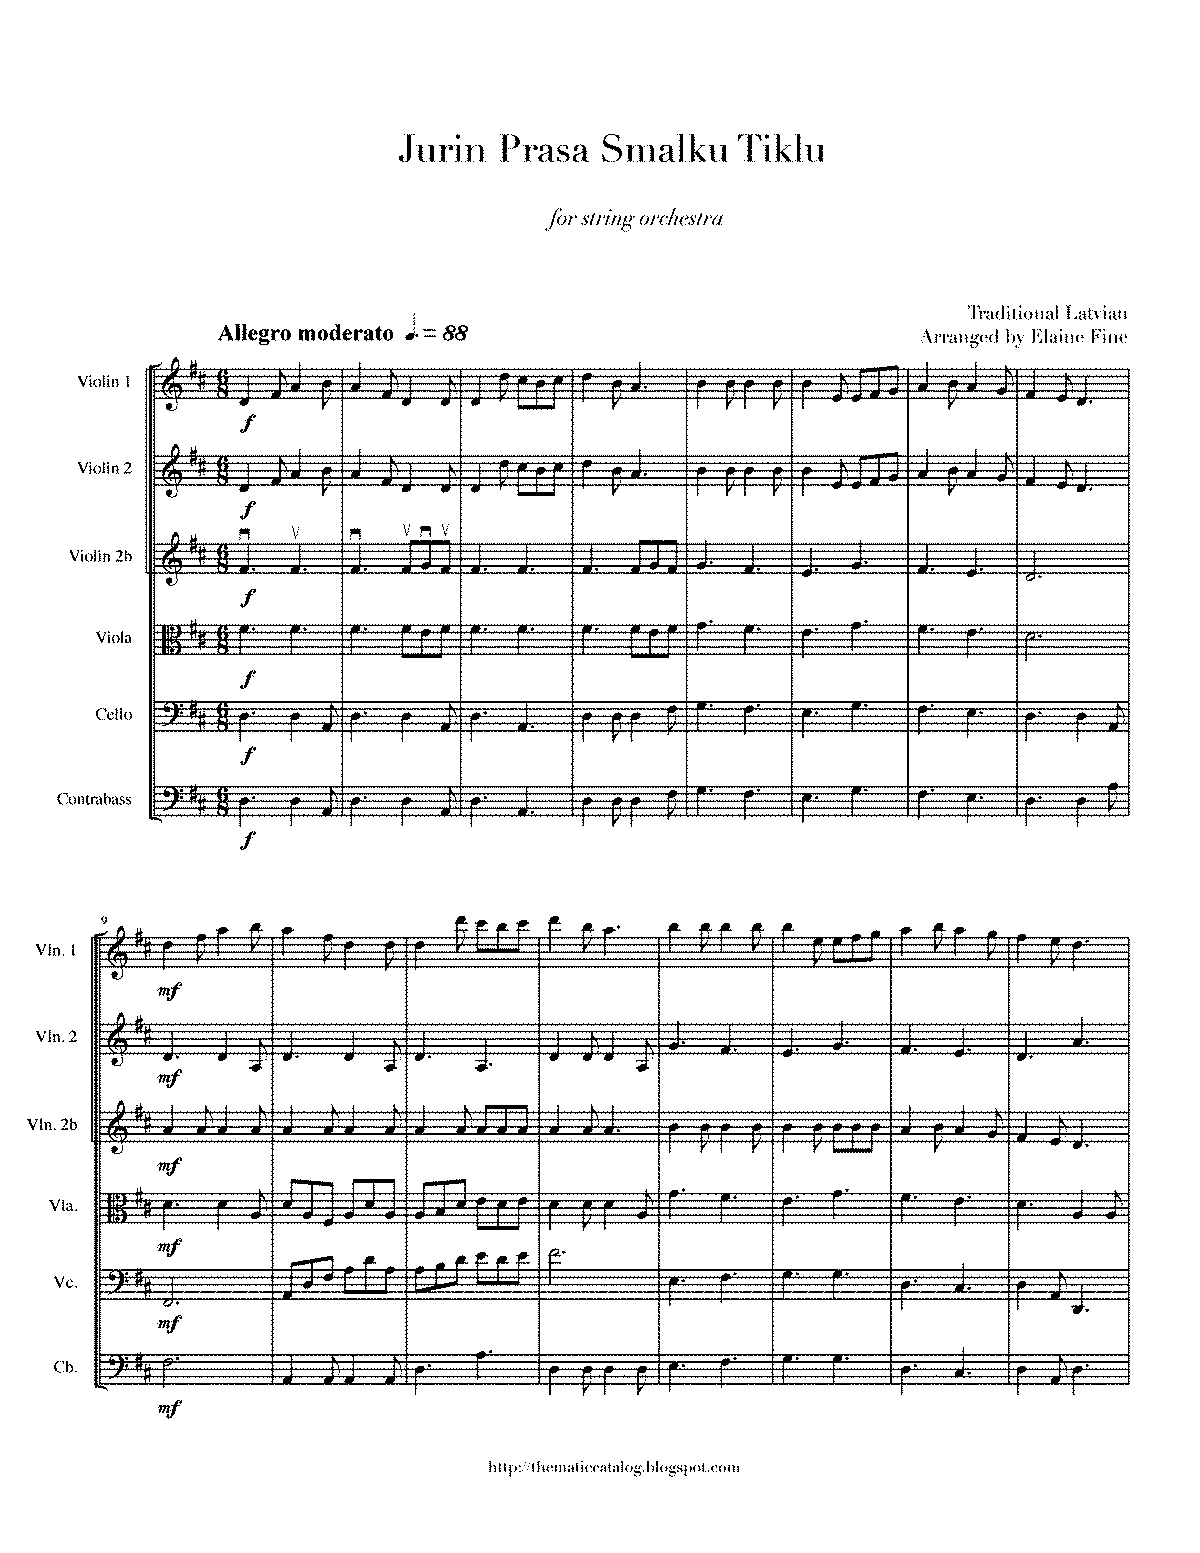 WIMA.518e-Jurin Prasa Smalku Tiklu for String Orchestra.pdf